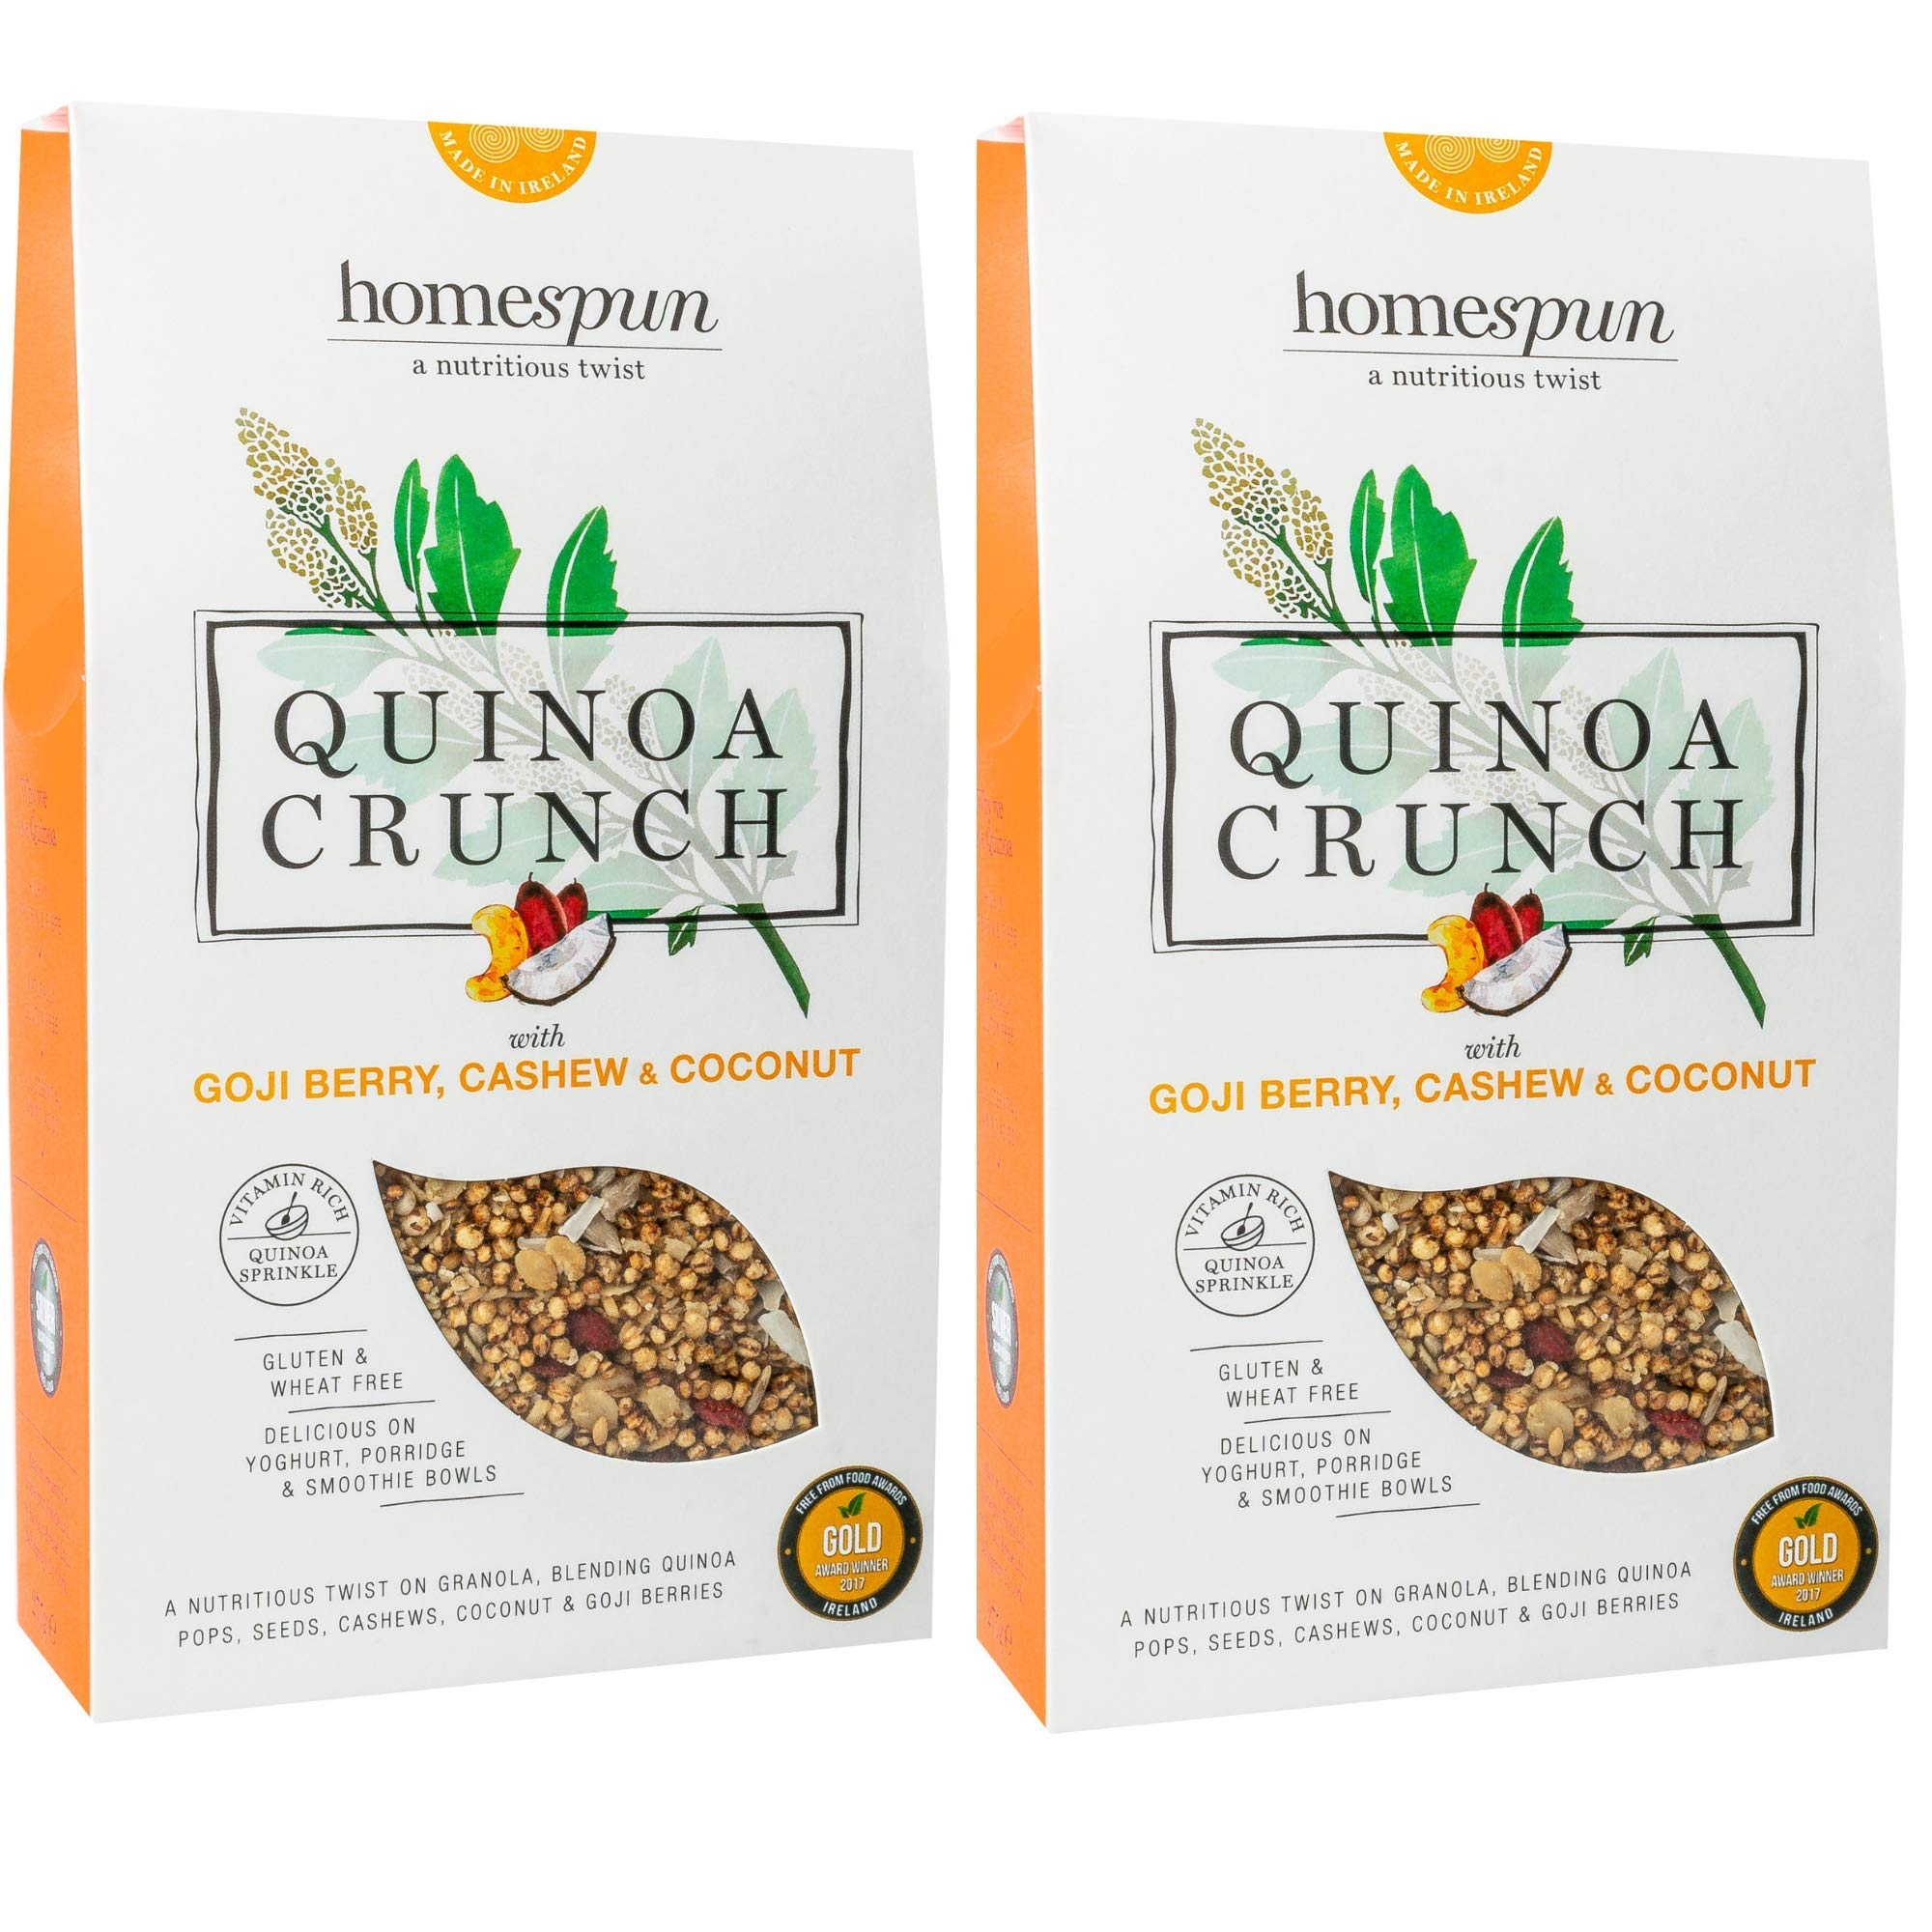 Quinoa Crunch - Luxuriously Nutritious Granola - Goji Berry, Cashew & Coconut - No Gluten - Suitable for Coeliacs - 2 x 275g - by Homespun